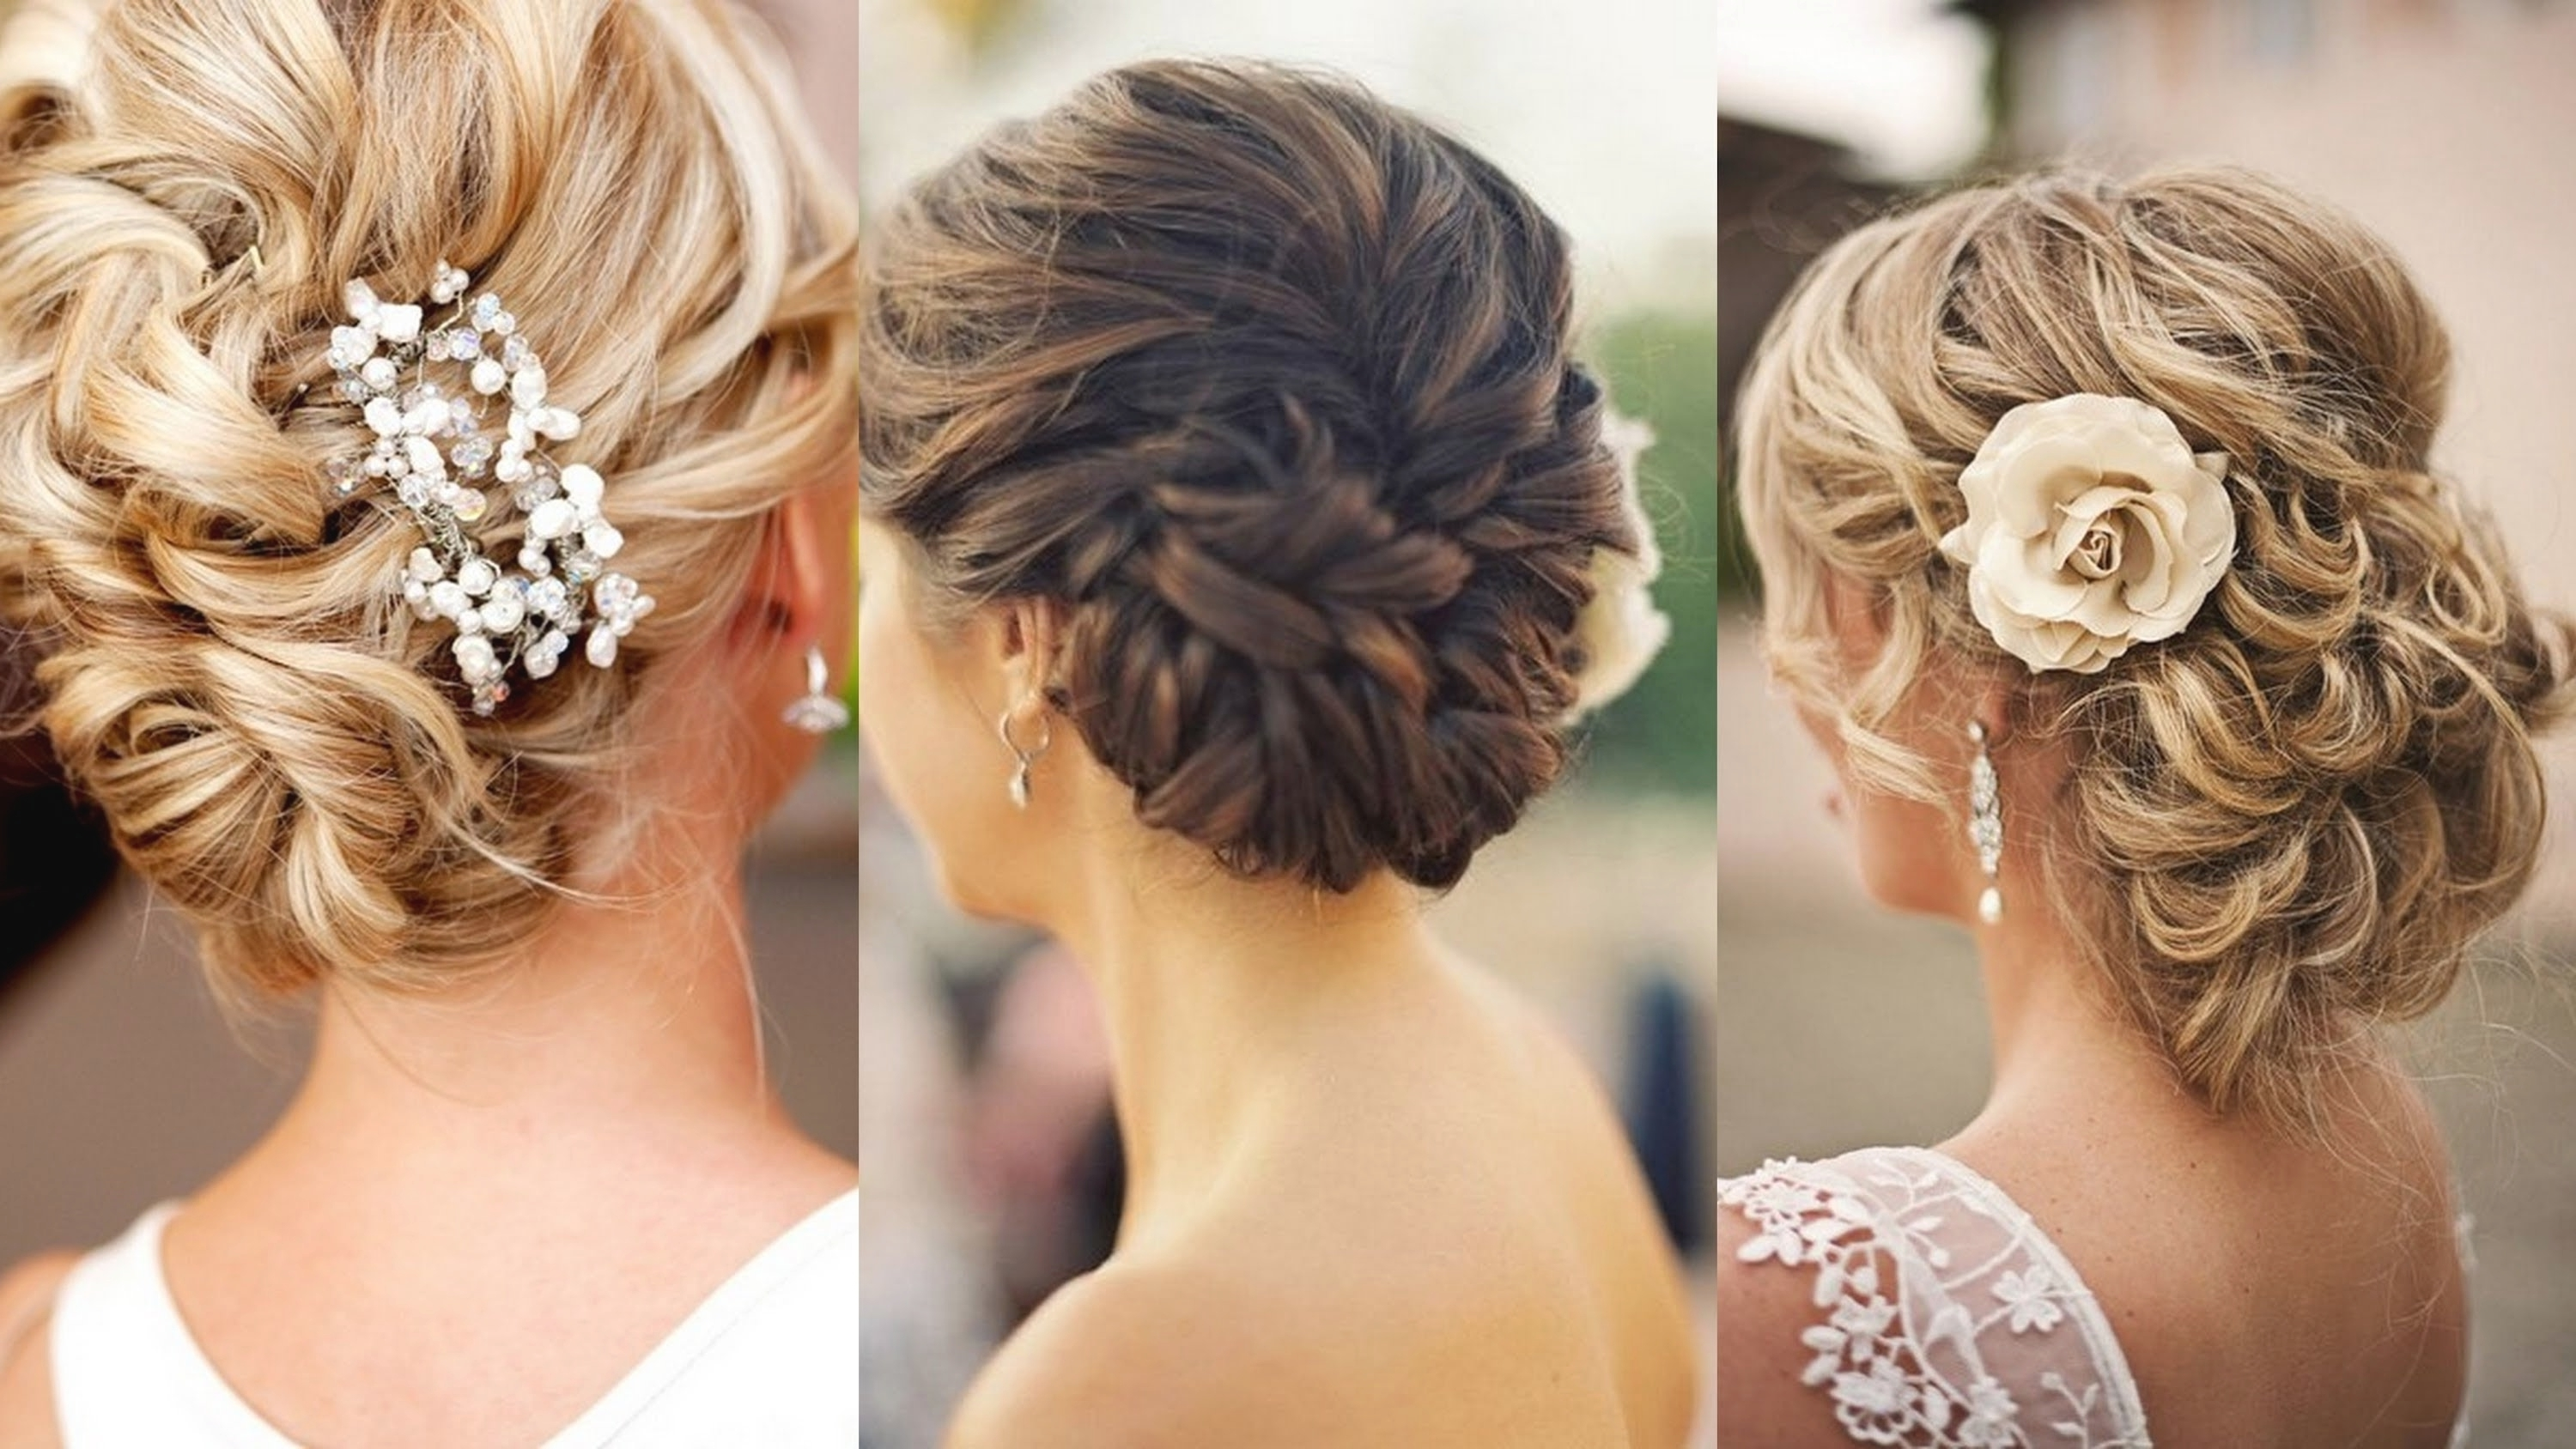 Updo Hairstyles Bridesmaid | Fade Haircut With Hairstyles For Bridesmaids Updos (View 13 of 15)